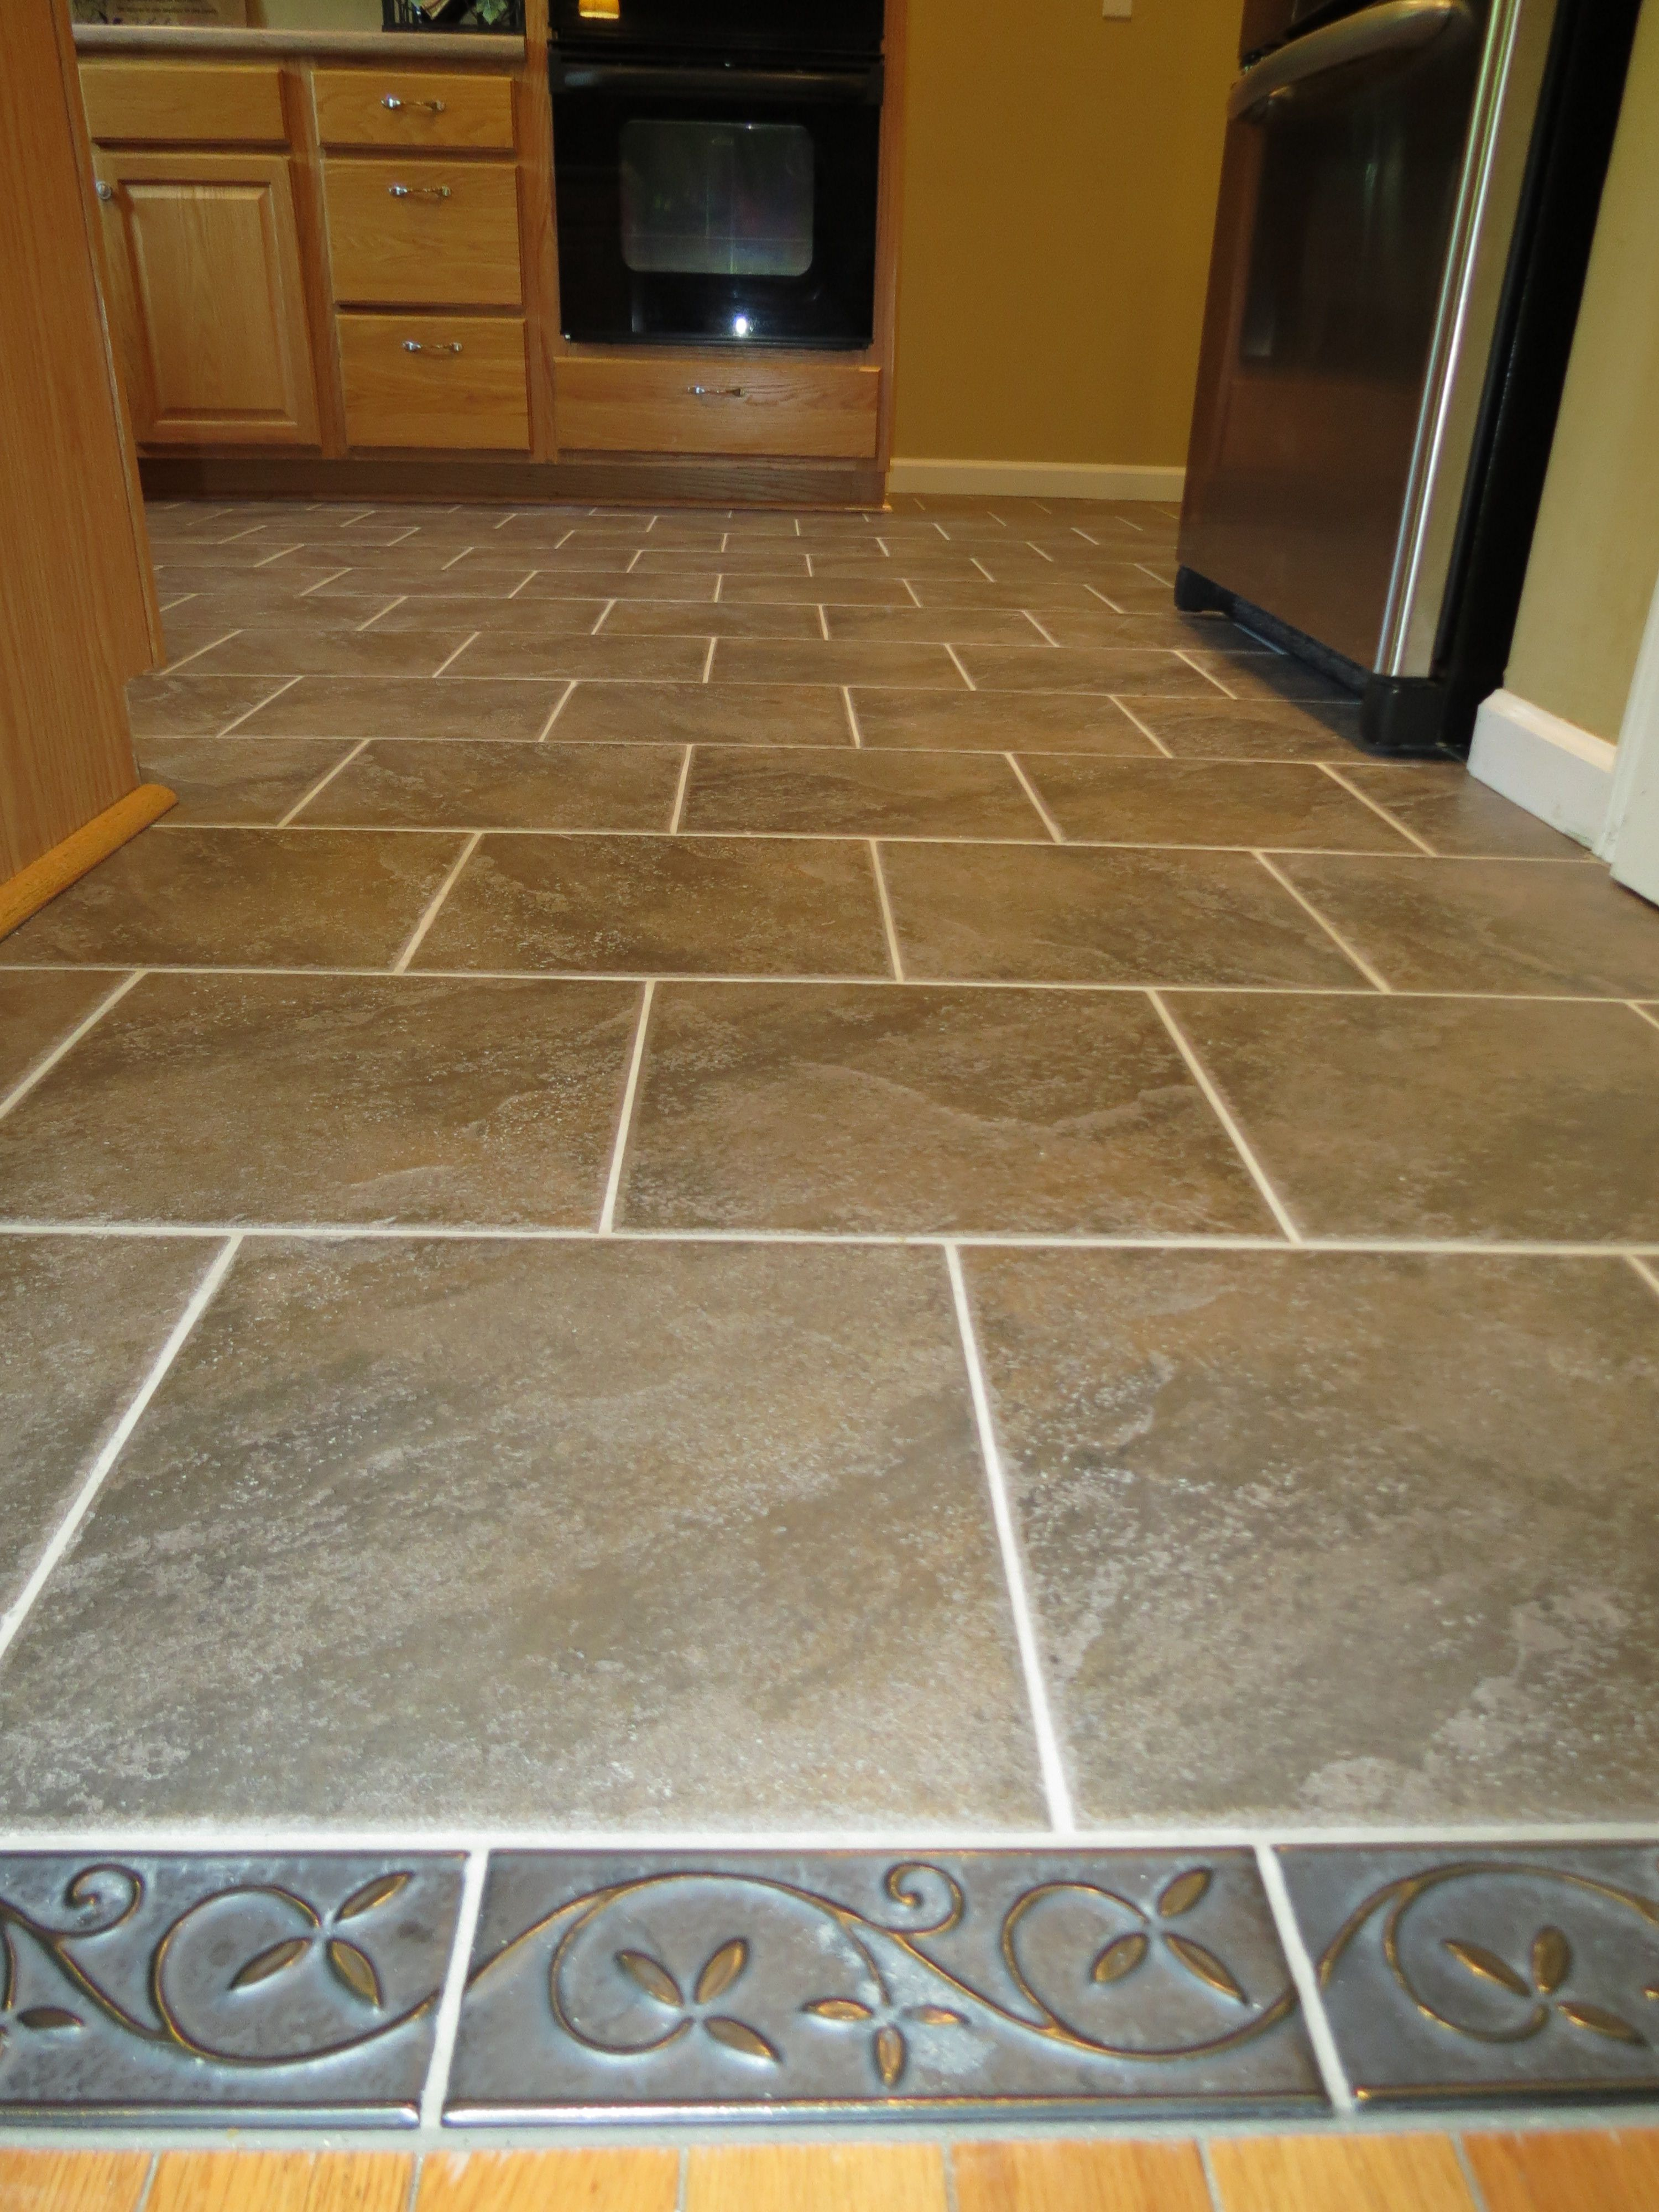 Natural Stone Kitchen Flooring Kitchen Floor Tile Designs Design Kitchen Flooring Kitchen